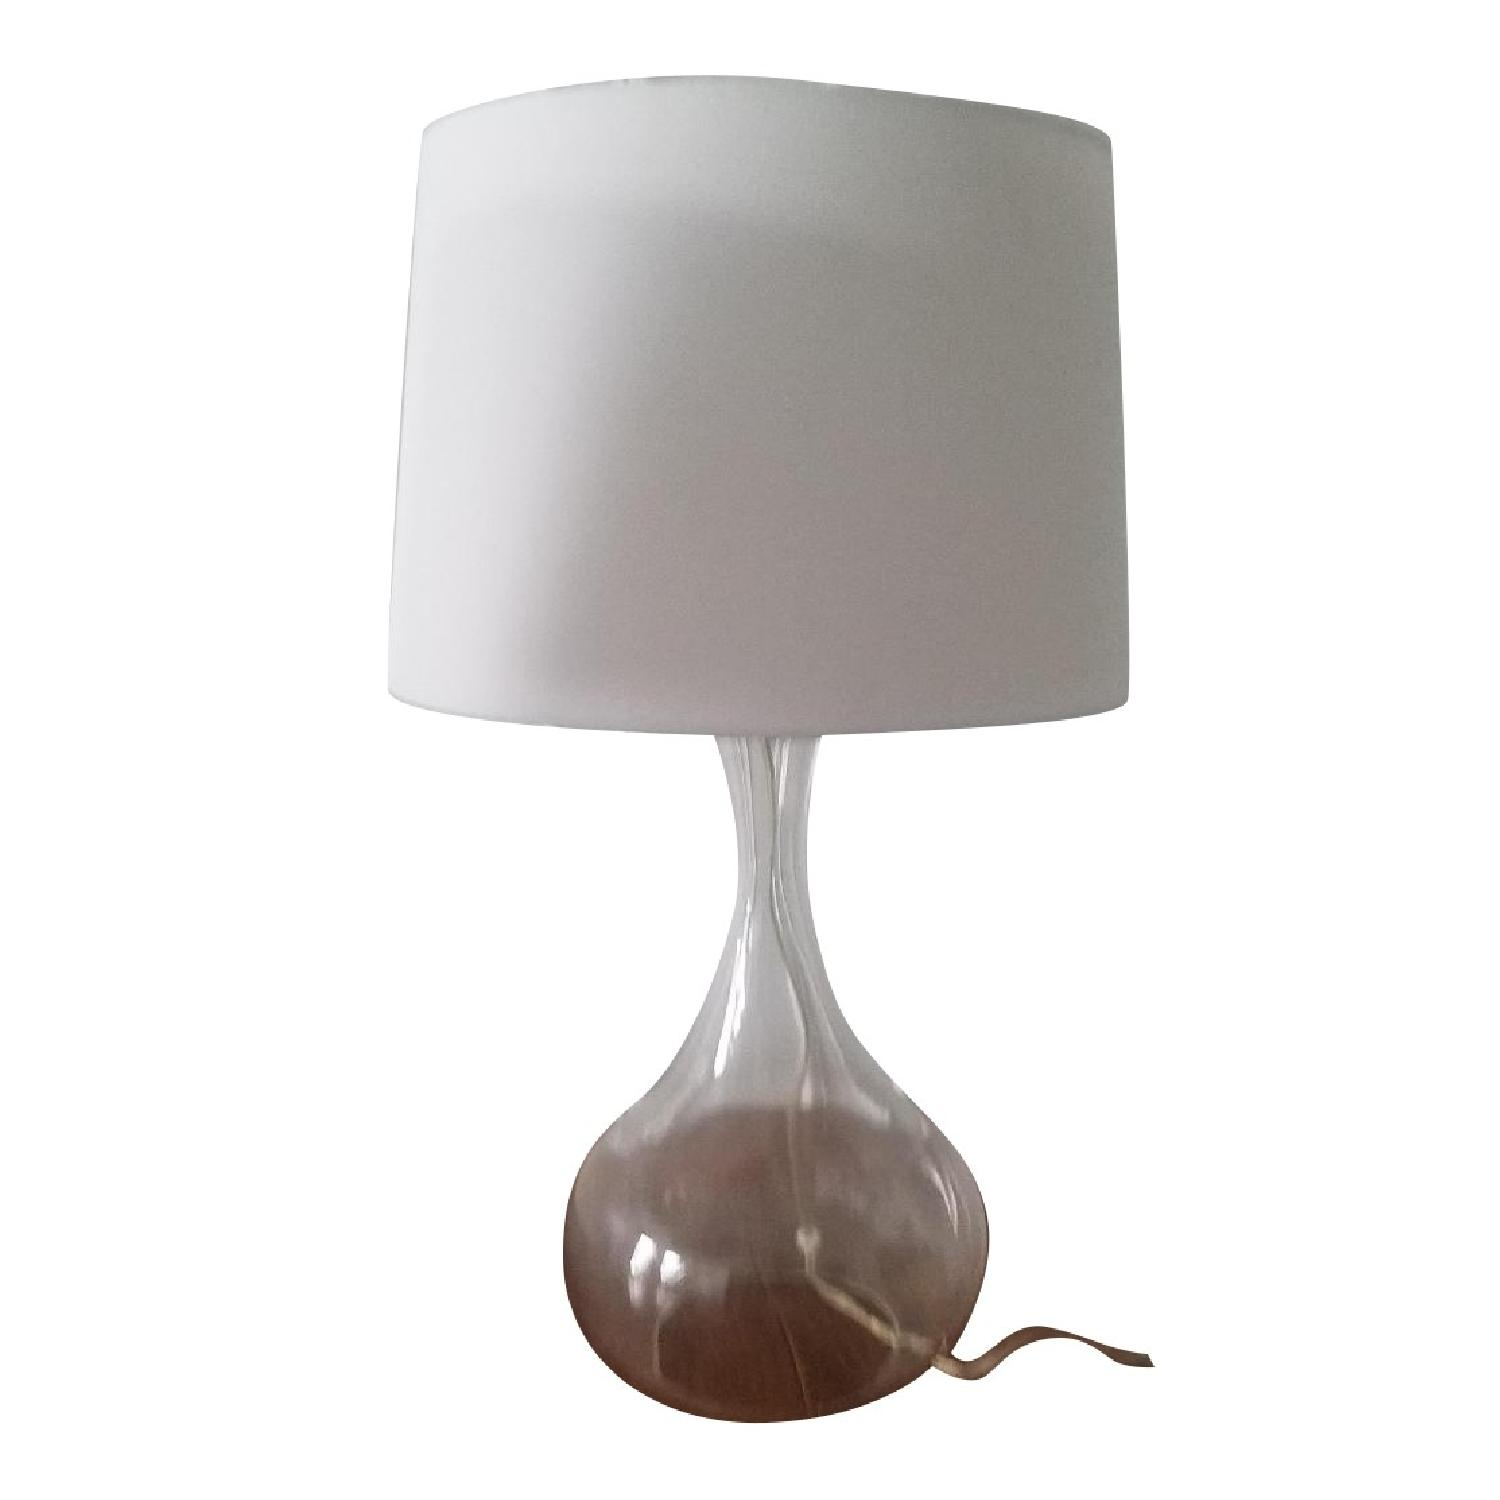 Pottery barn glass base table lamps w white shades aptdeco pottery barn glass base table lamps w white shades aloadofball Gallery